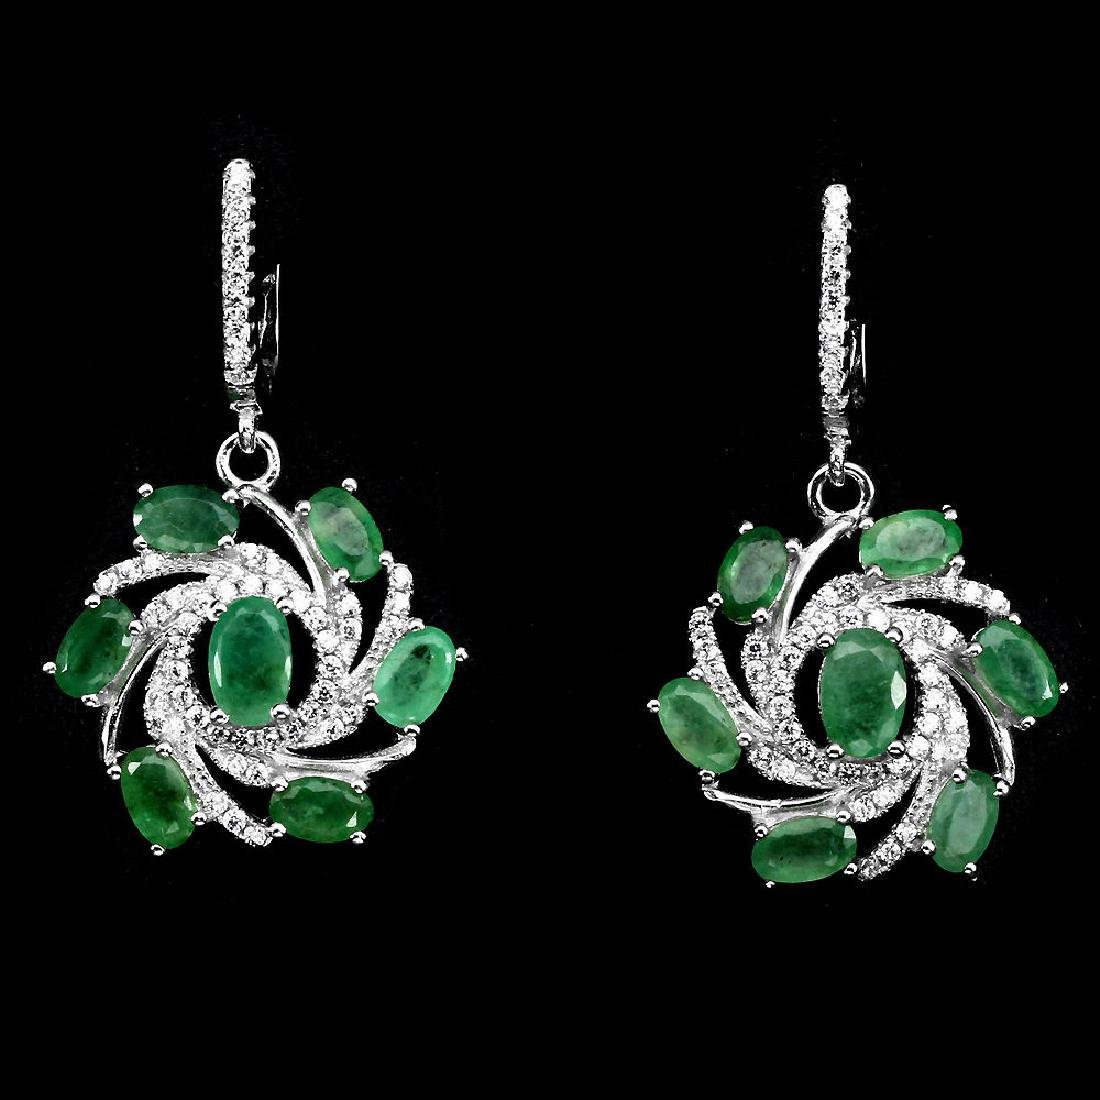 Natural Emerald Earrings & Pendant 48 Carats Set